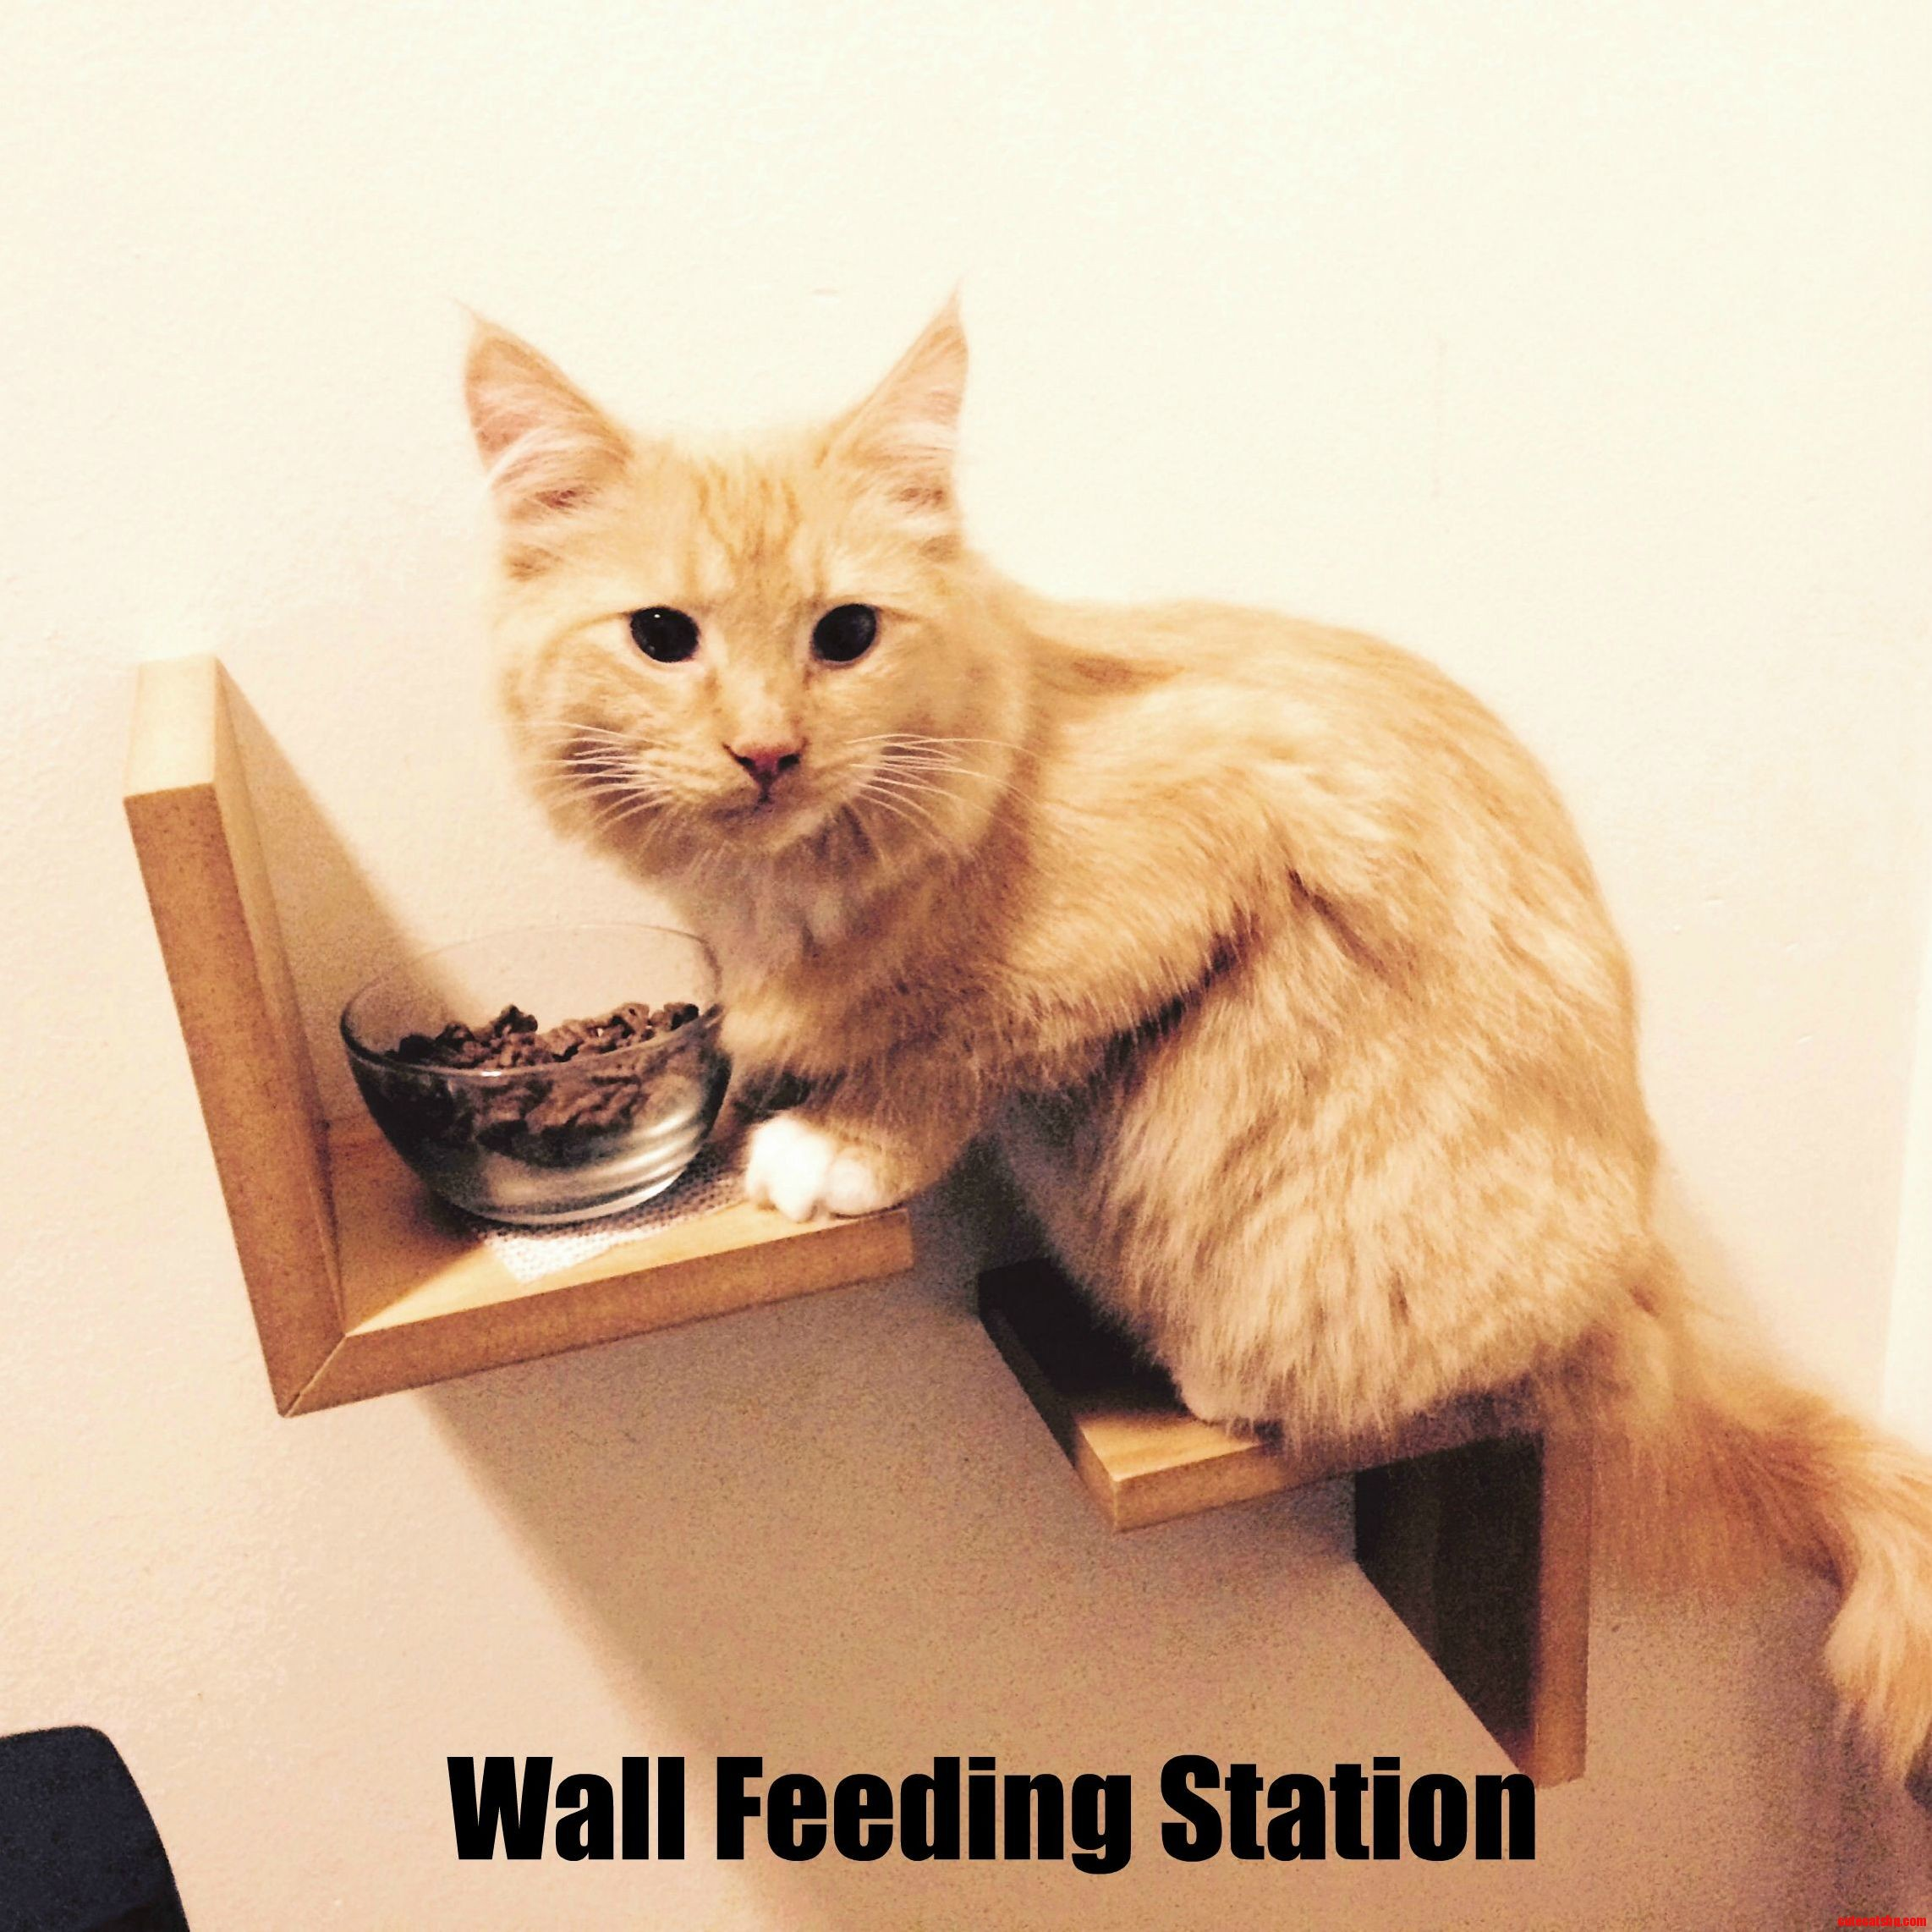 Wall feeding station for cat